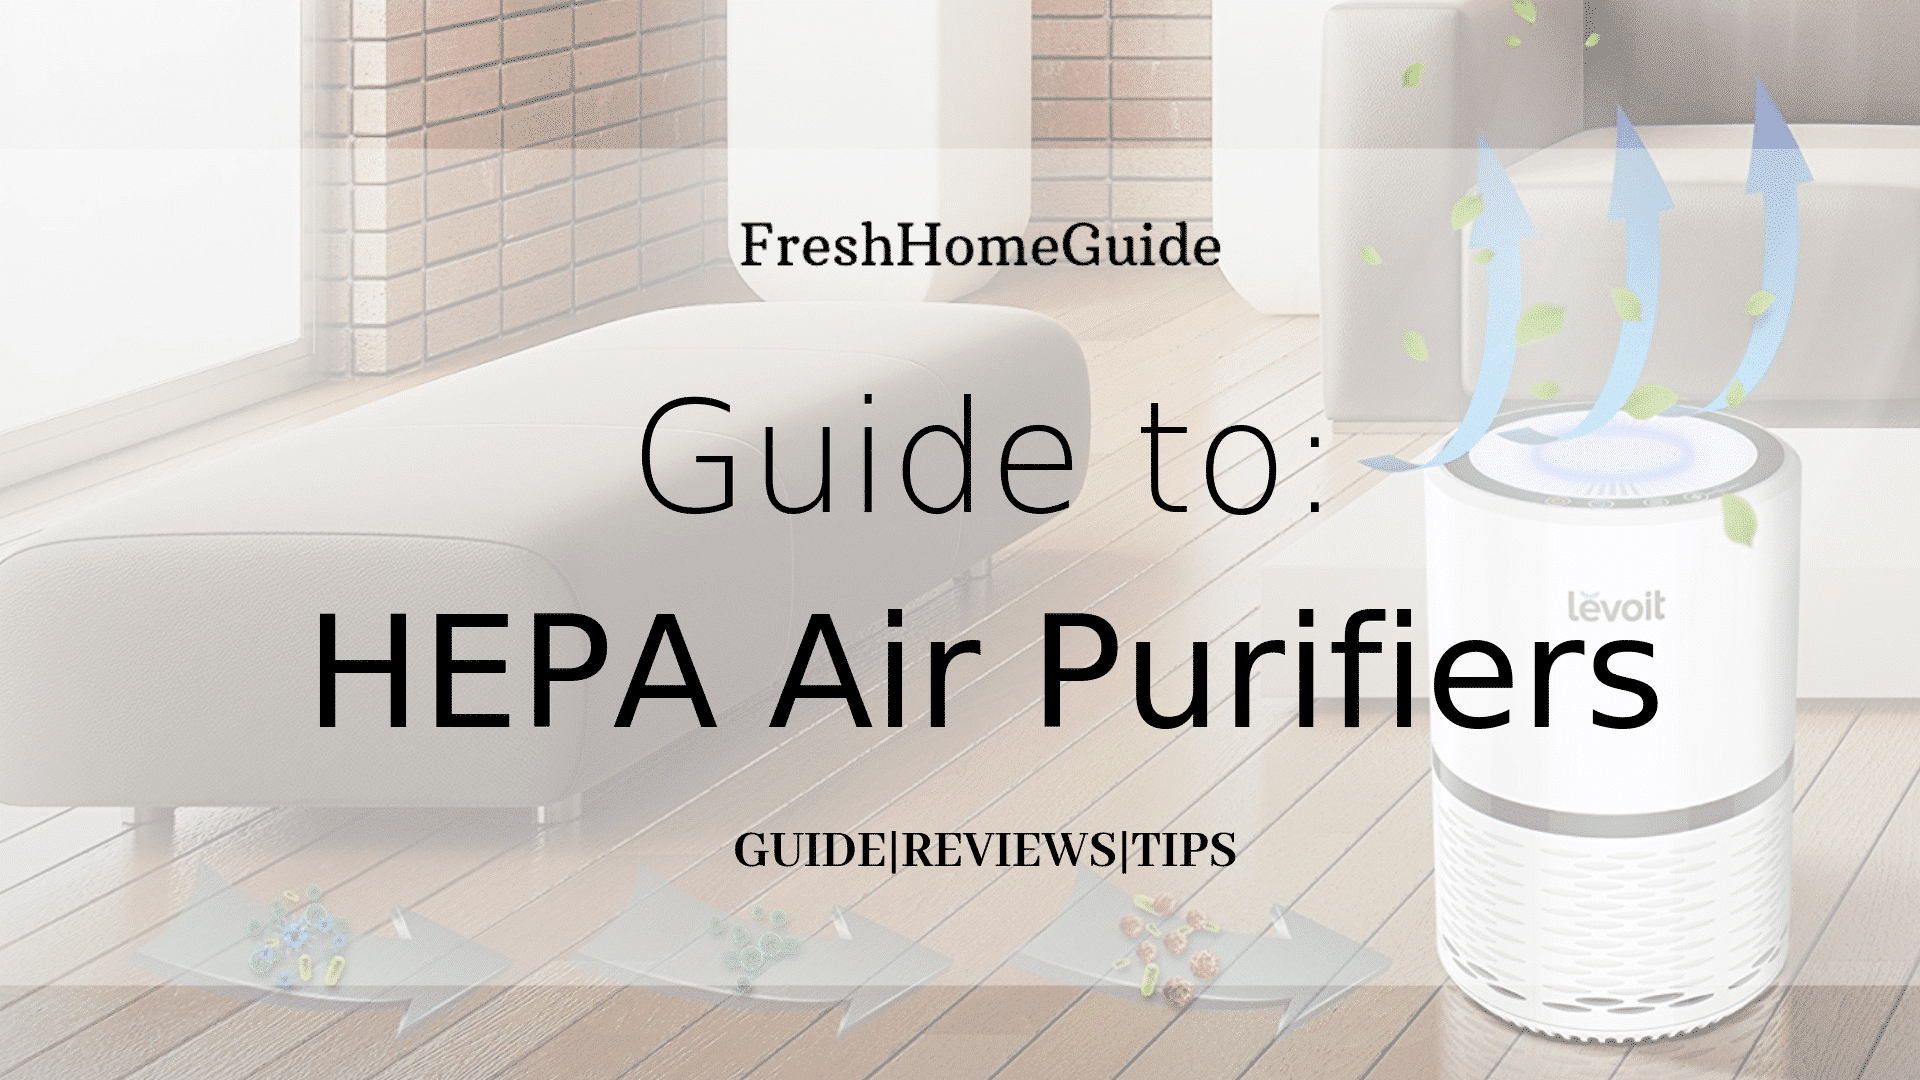 Guide to HEPA Air Purifiers